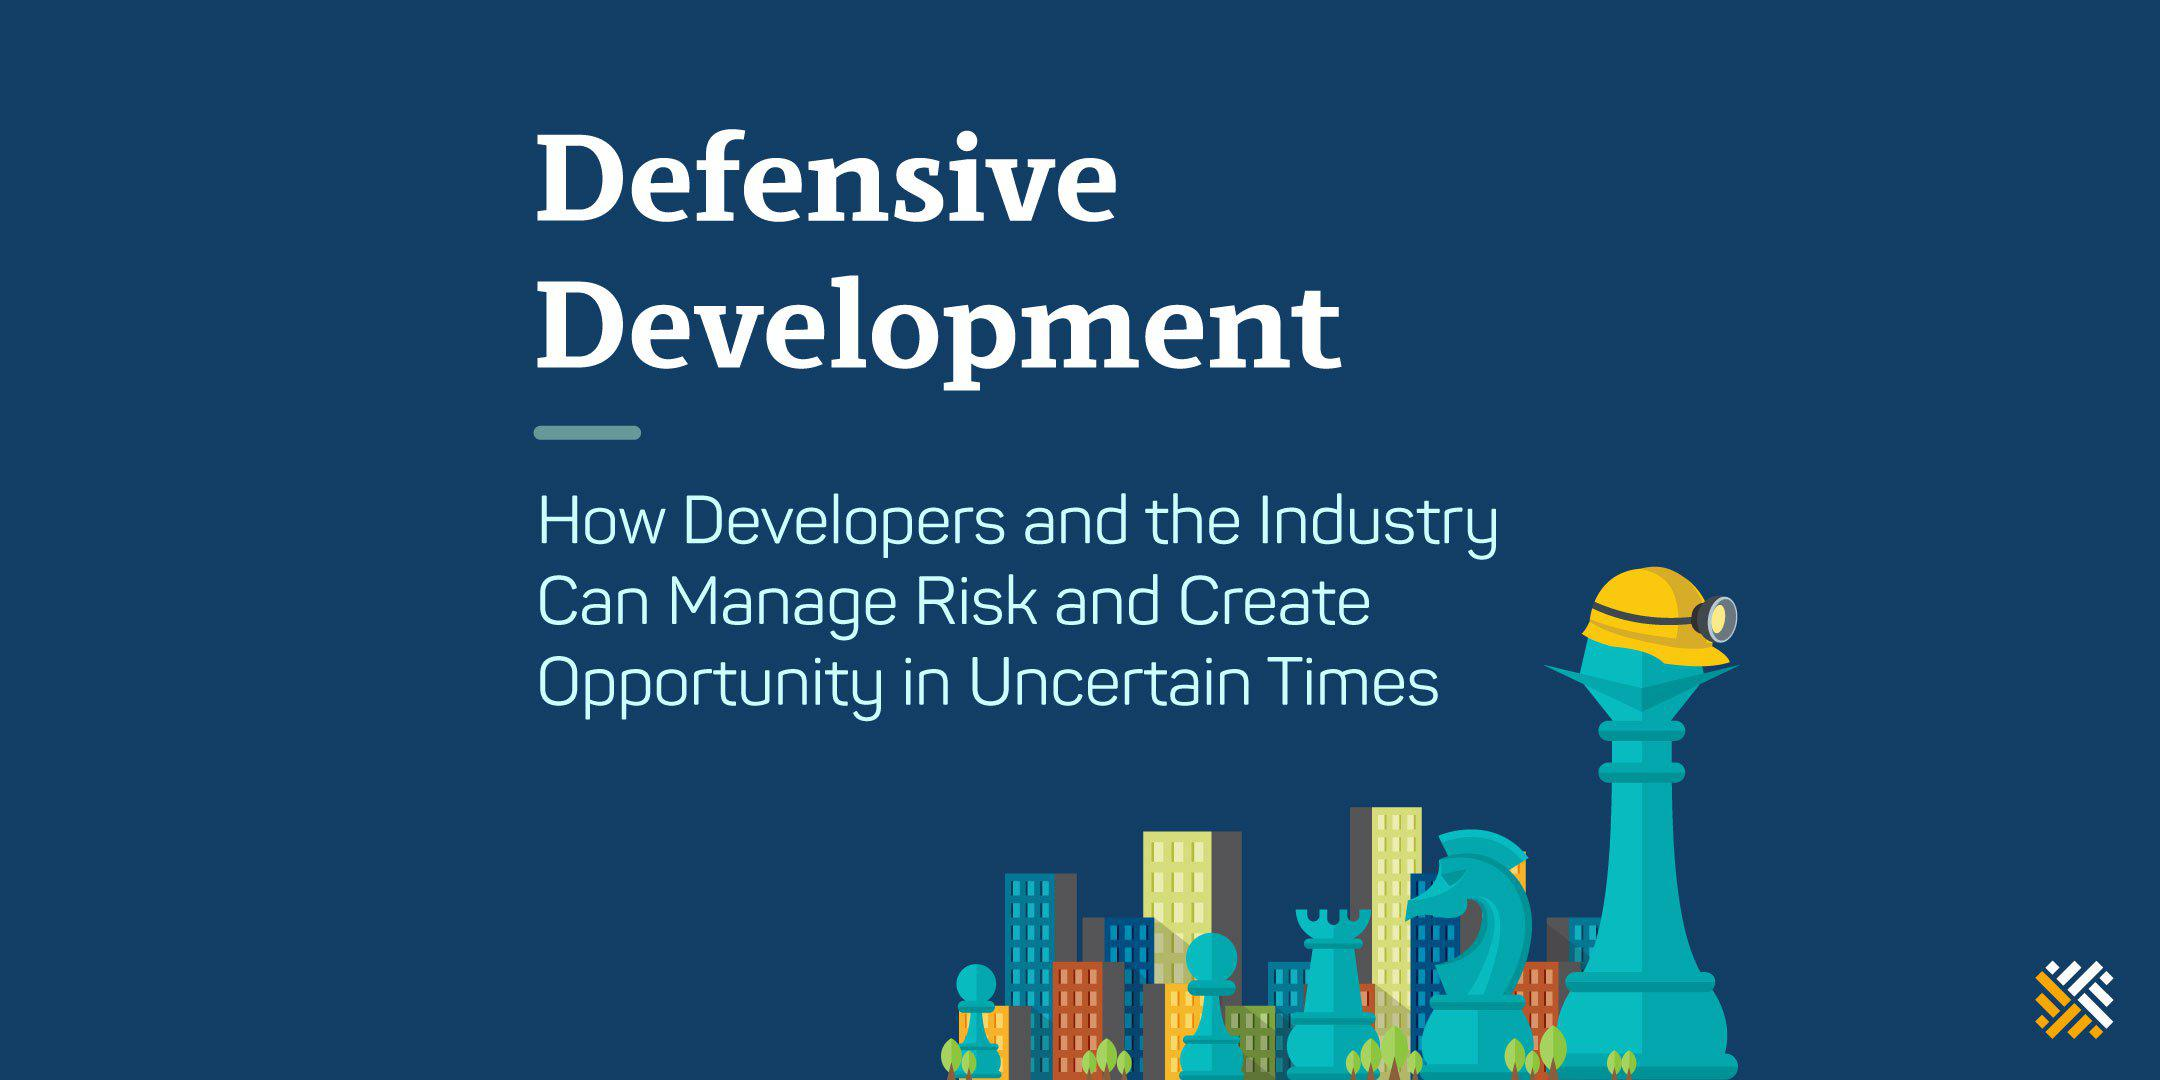 EB-feature-with-text-Defensive-Development